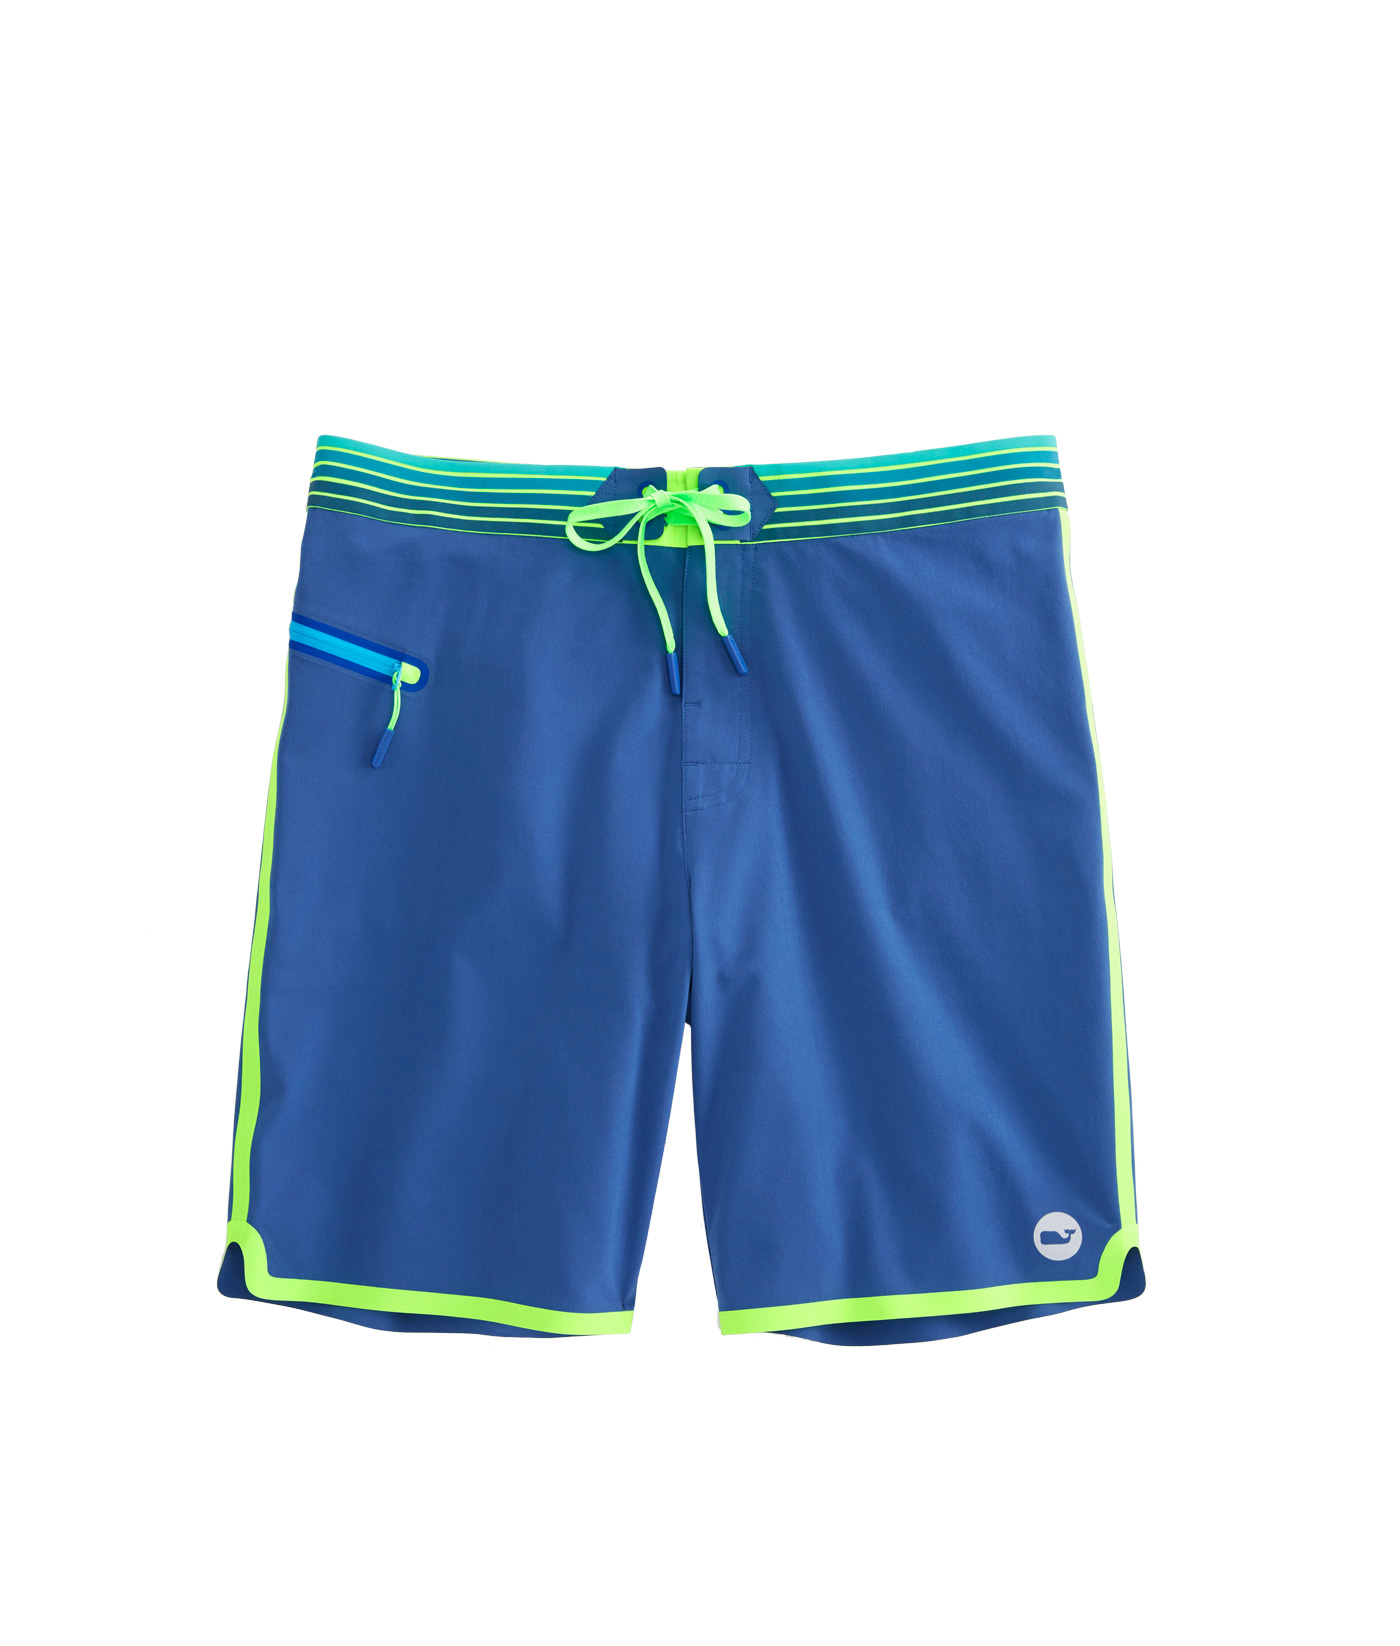 Find Men's Clearance Board Shorts at smileqbl.gq Enjoy free shipping and returns with NikePlus.